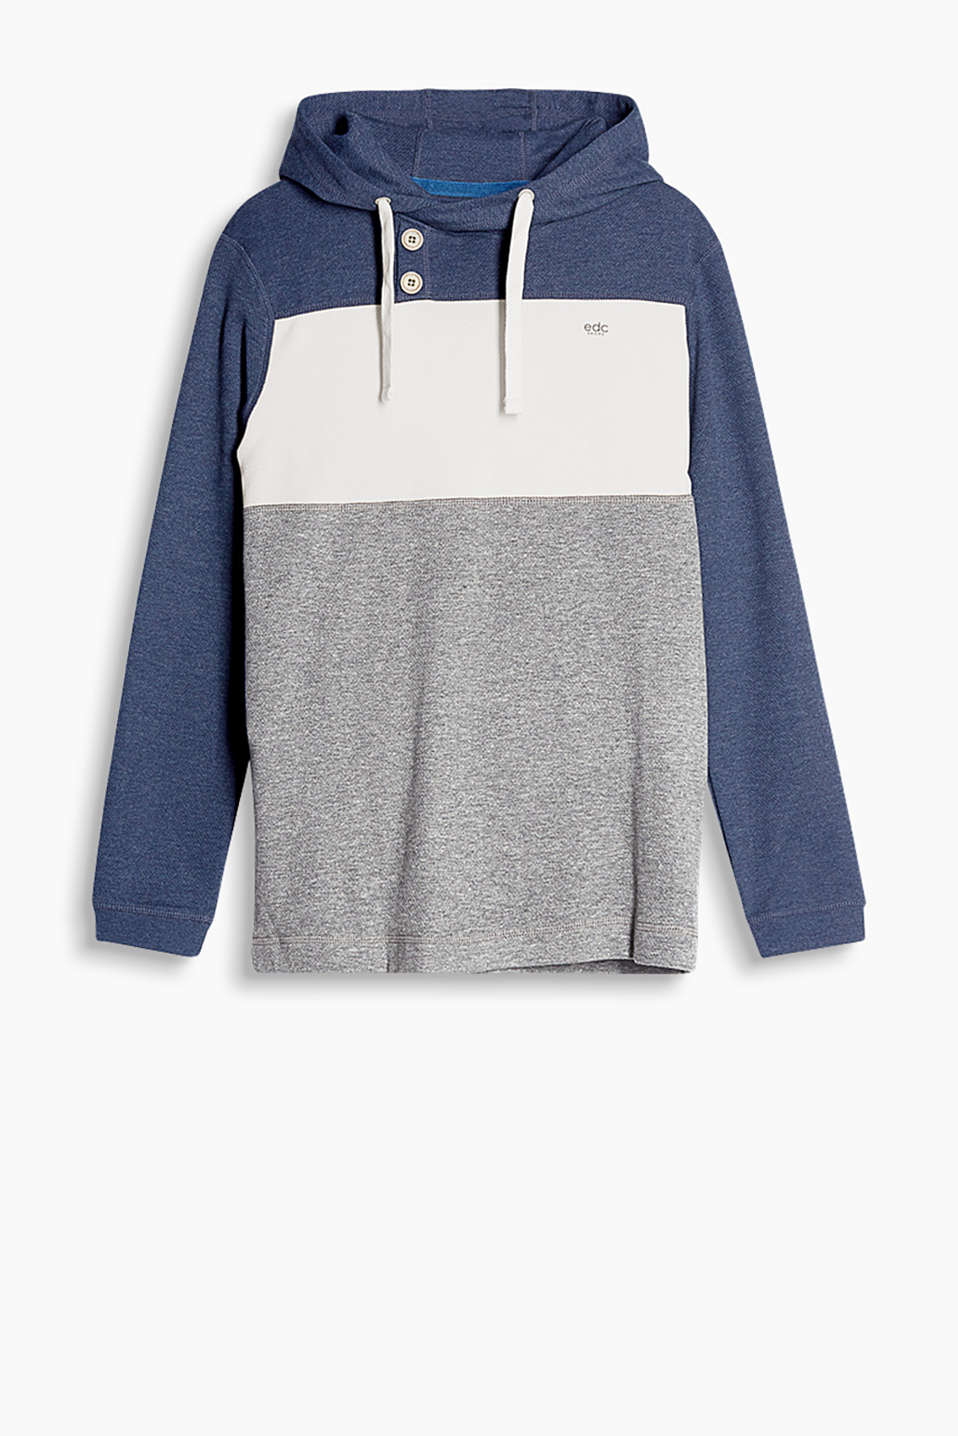 Soft cotton-blend hoodie with a fine texture and wooden buttons on the neckline